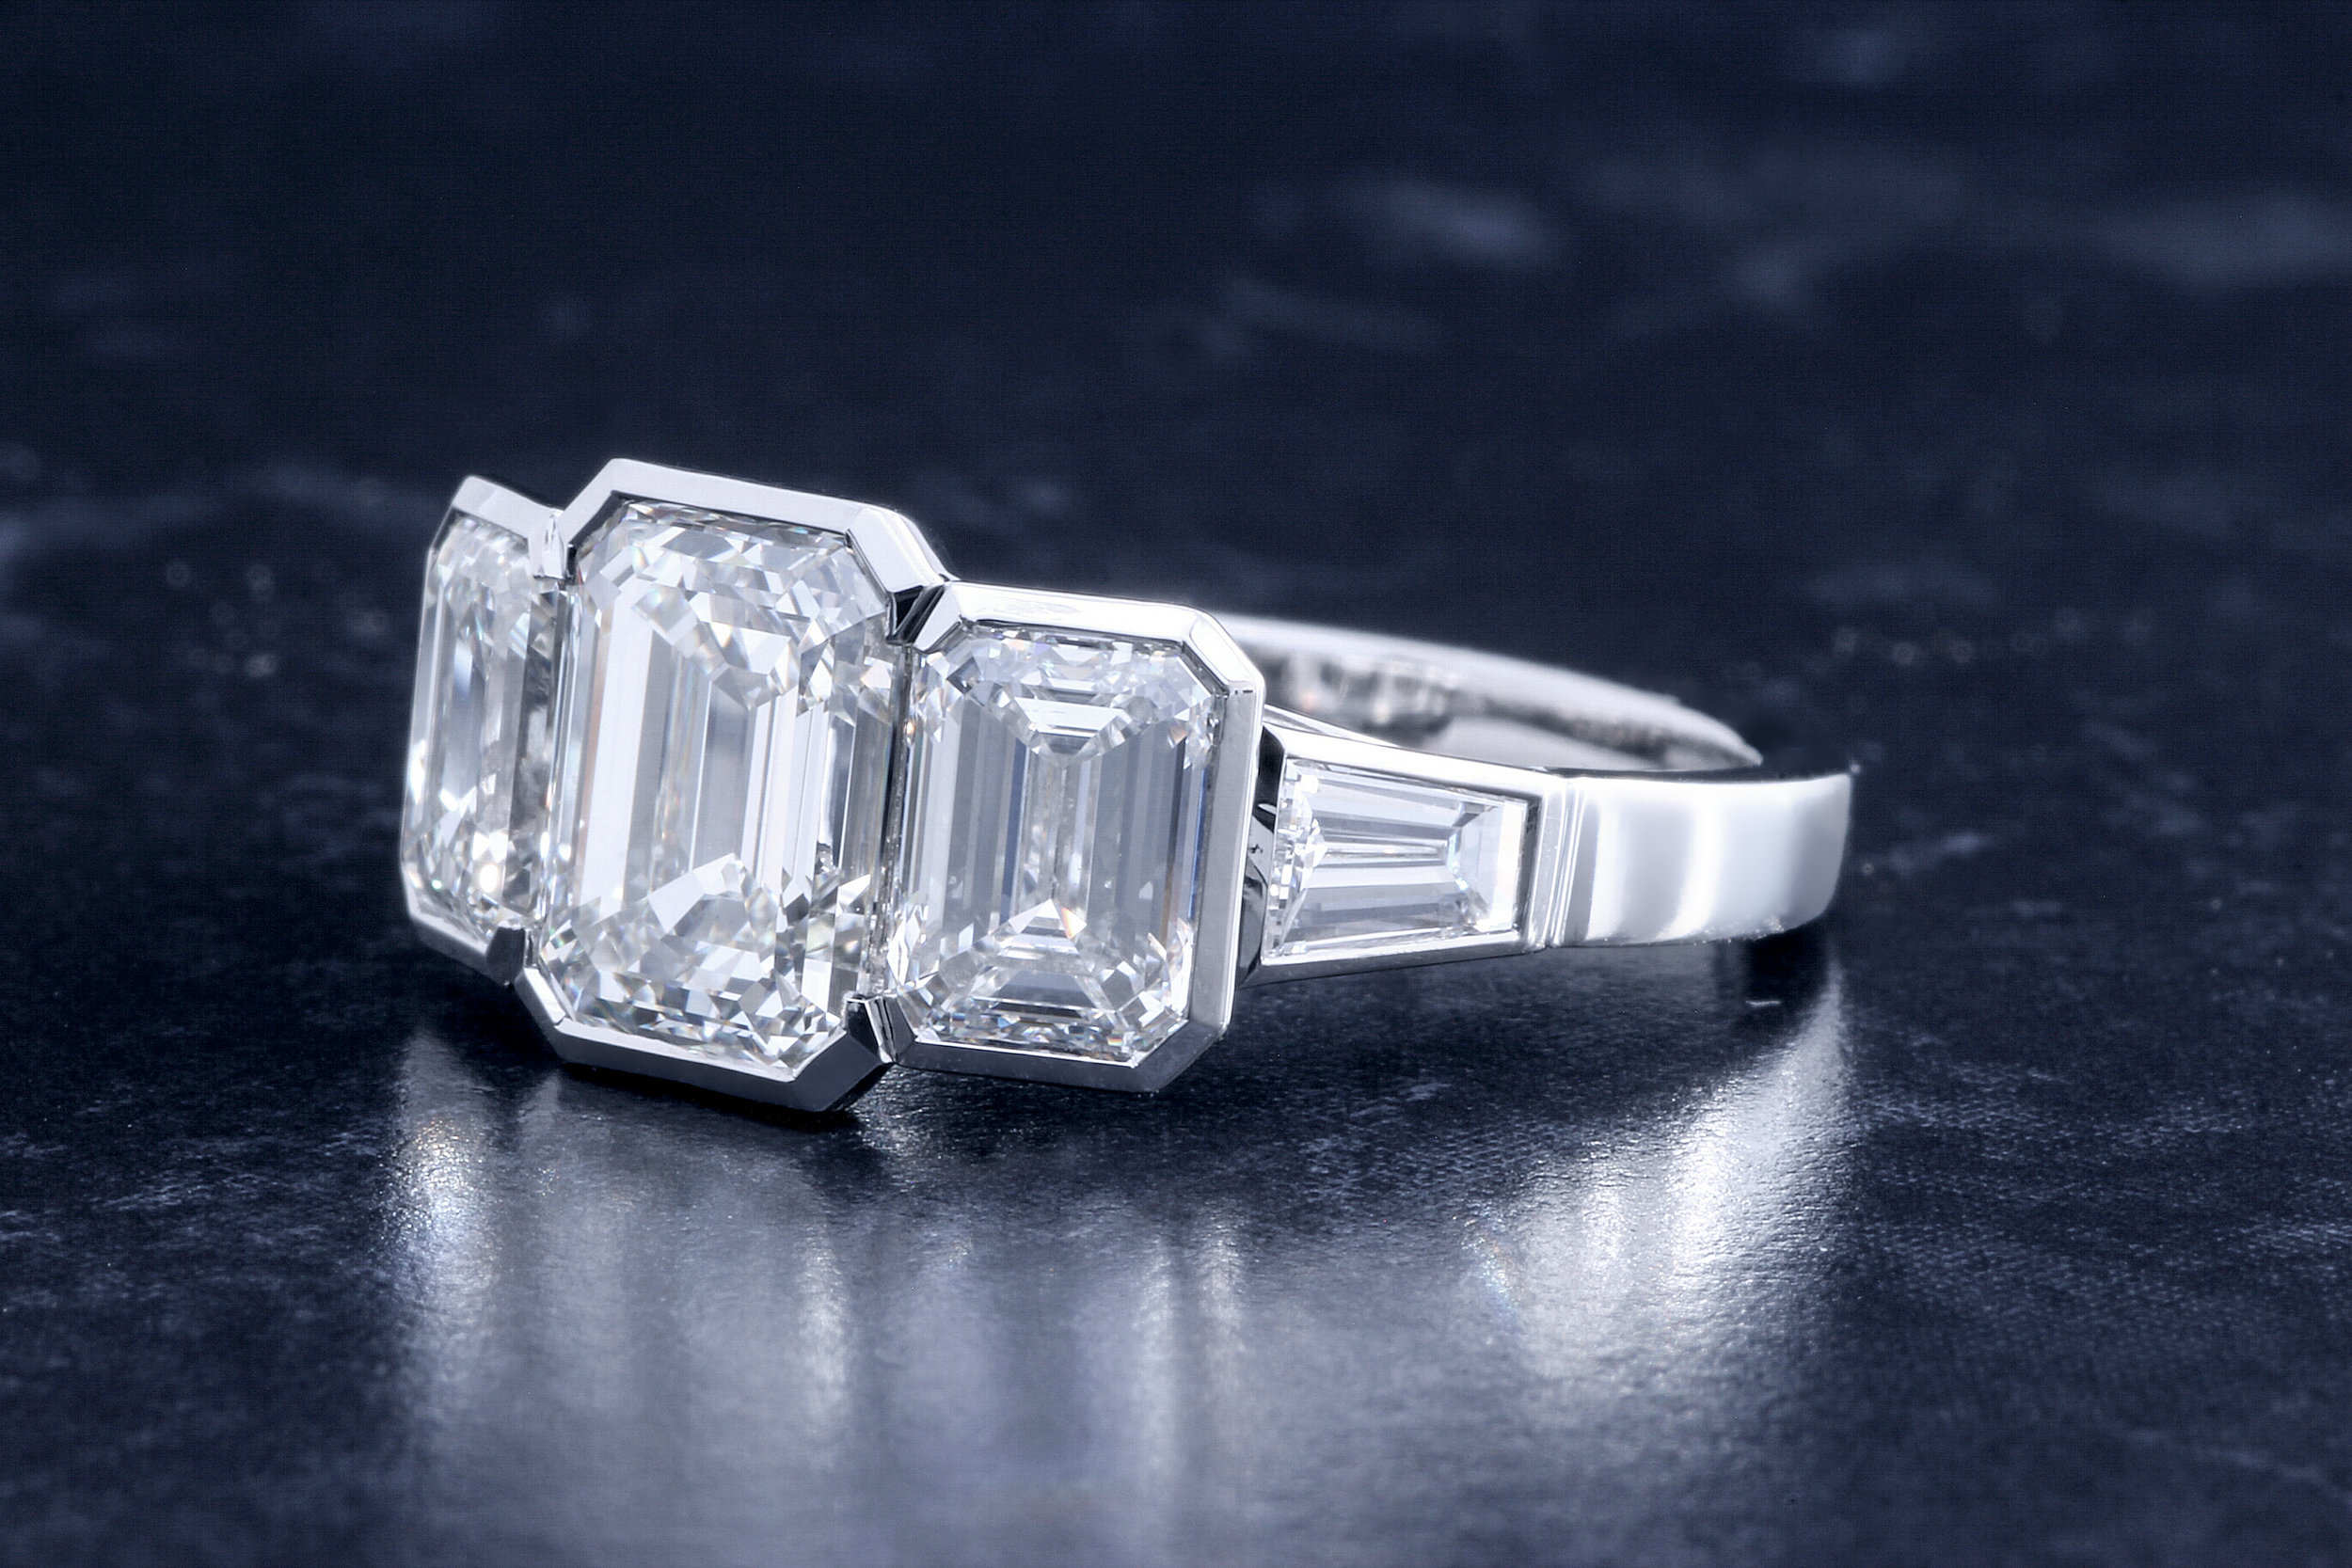 Copy of Fabulous three stone emerald cut diamond ring with tapered baguette shoulders. Rub-over set in precision made platinum mount. Made in Chichester, England.